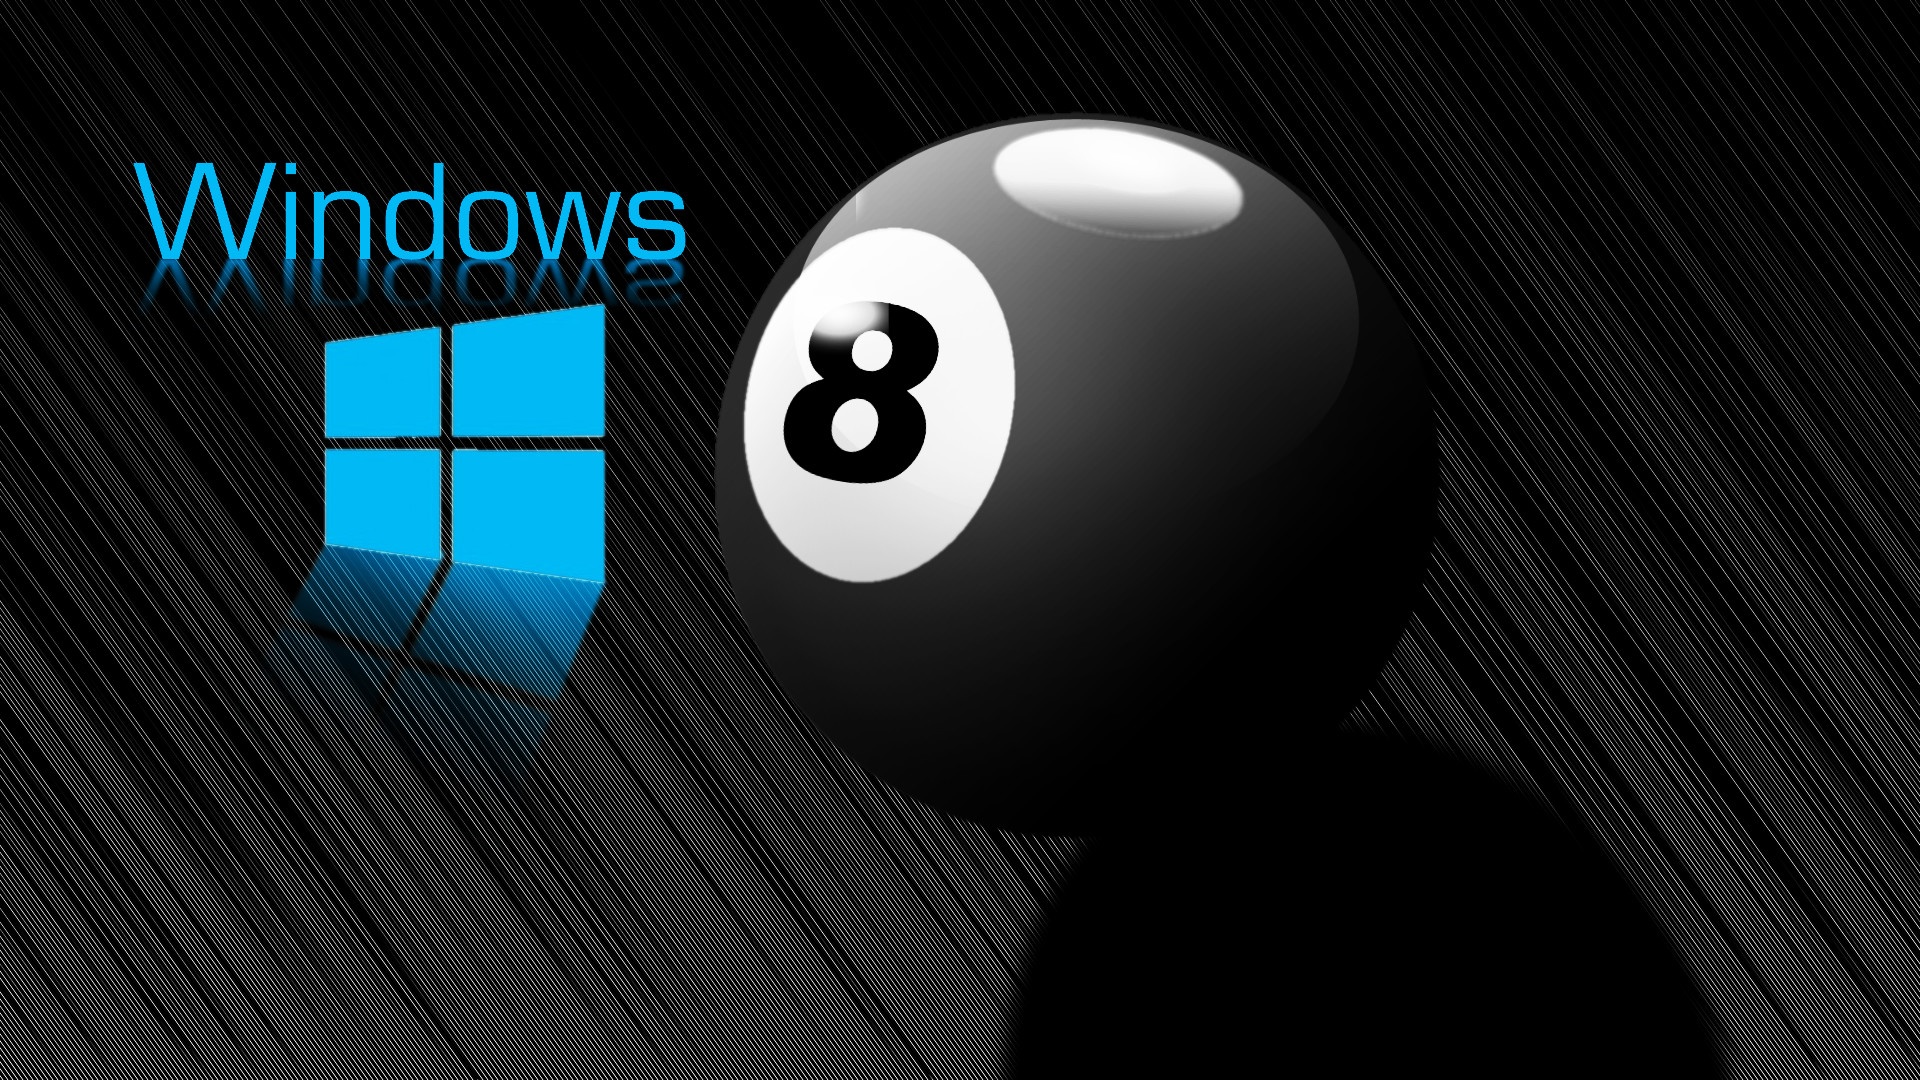 8 Ball Pool Wallpapers: Find best latest 8 Ball Pool Wallpapers in HD for  your PC desktop background & mobile phones.